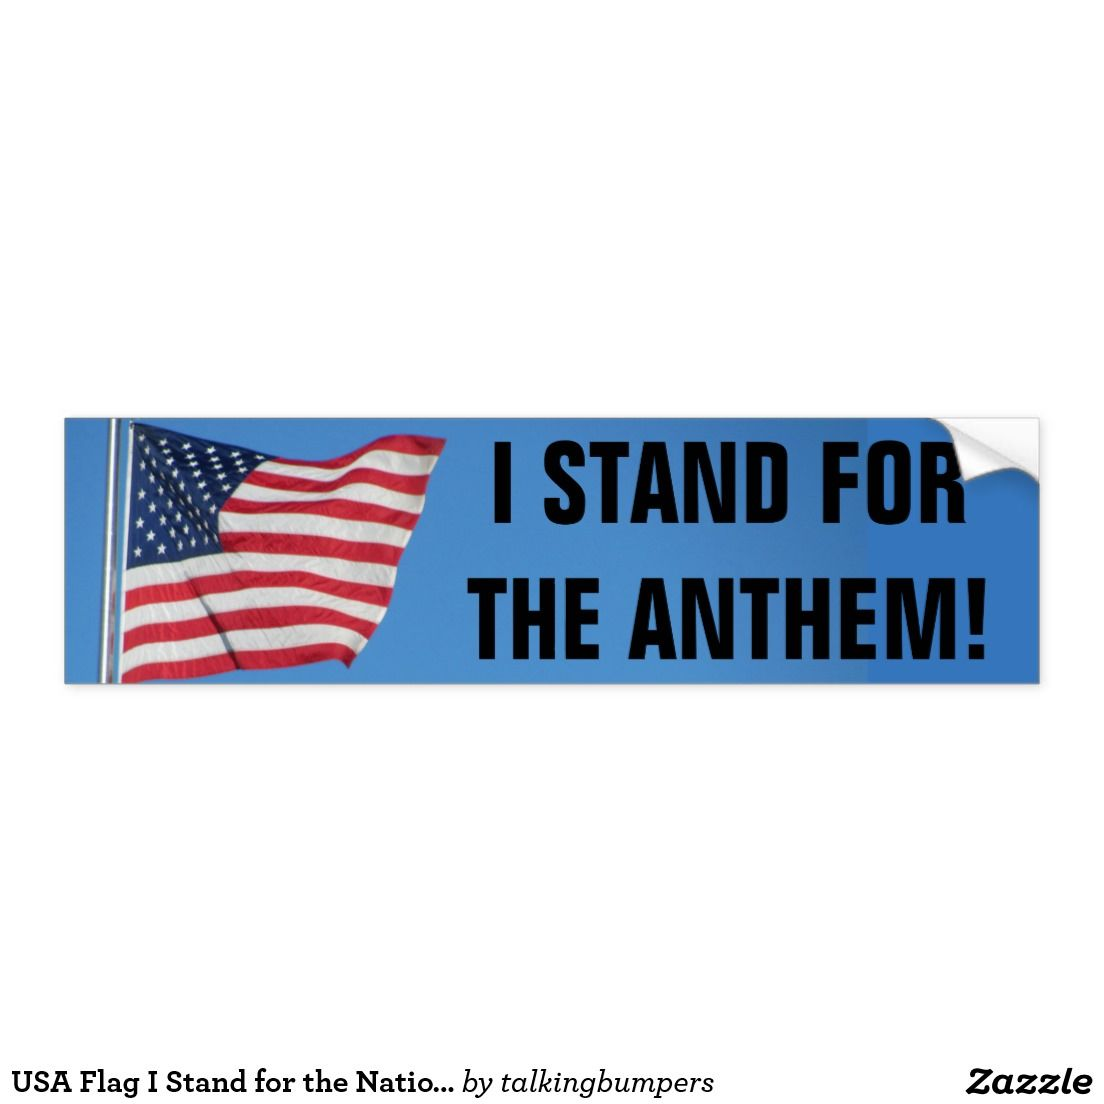 Usa flag i stand for the national anthem bumper sticker tell them usa flag i stand for the national anthem bumper sticker tell them were you stand biocorpaavc